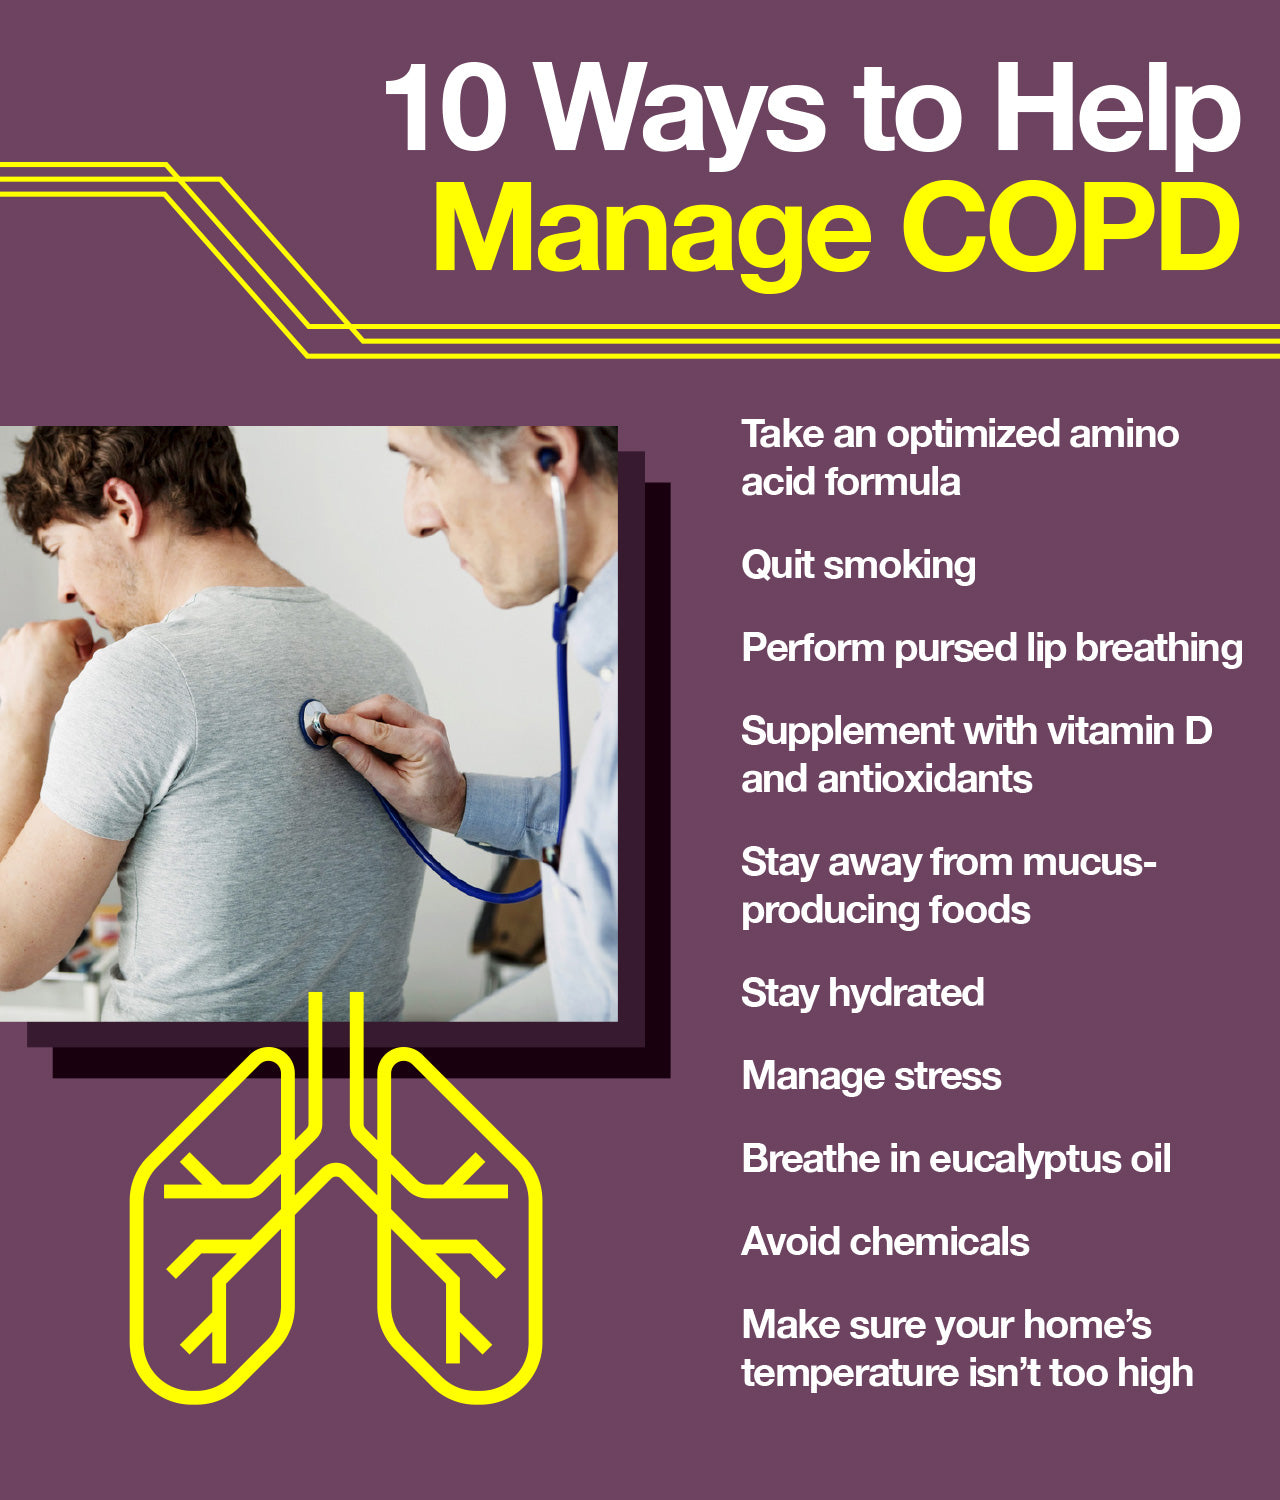 Tips to help manage COPD